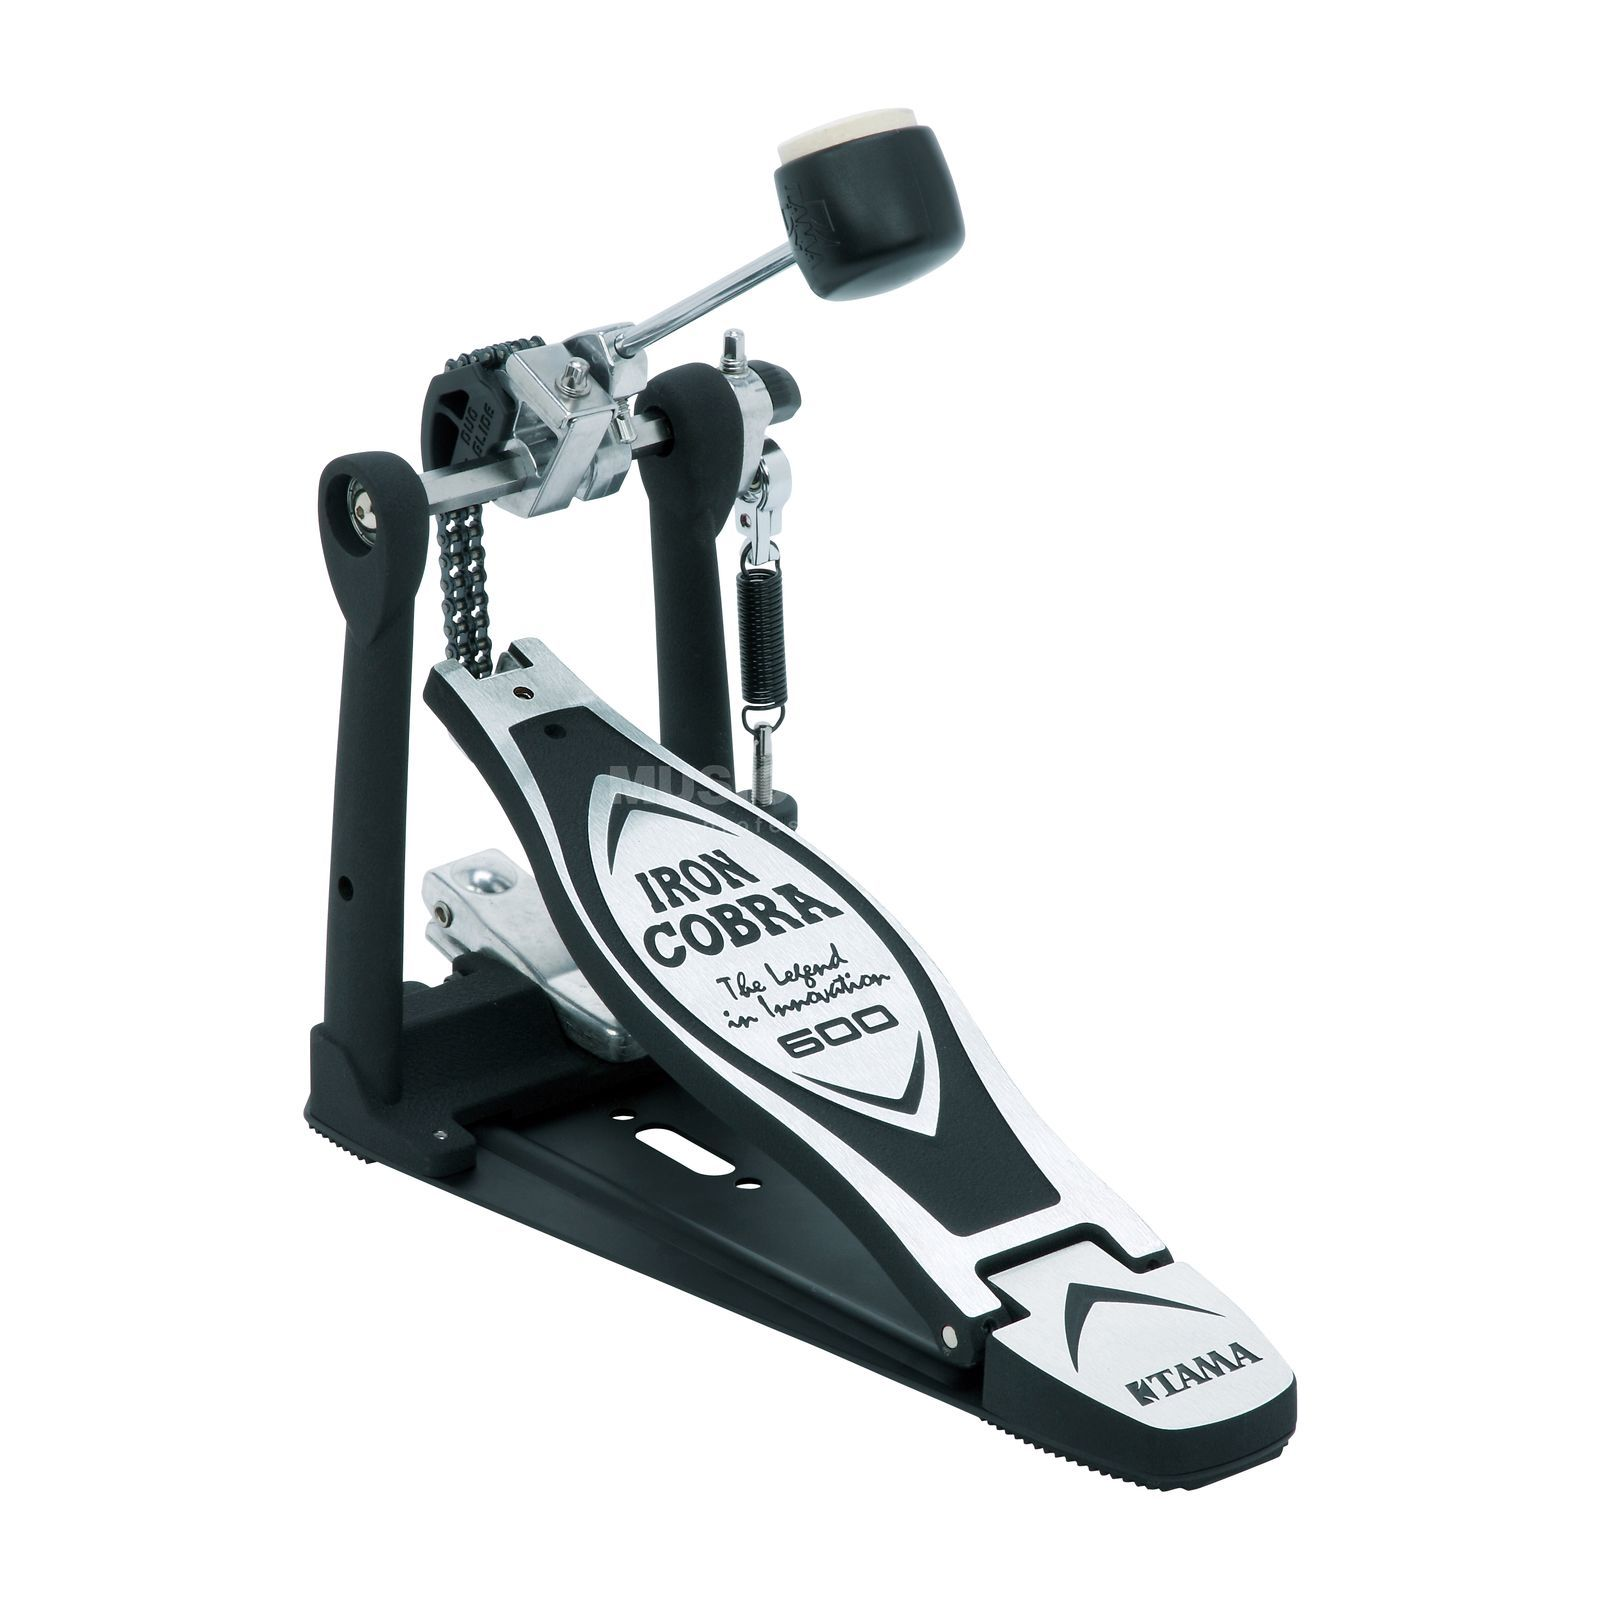 Tama Kick Pedal Iron Cobra, HP600D, Duo Glide Product Image